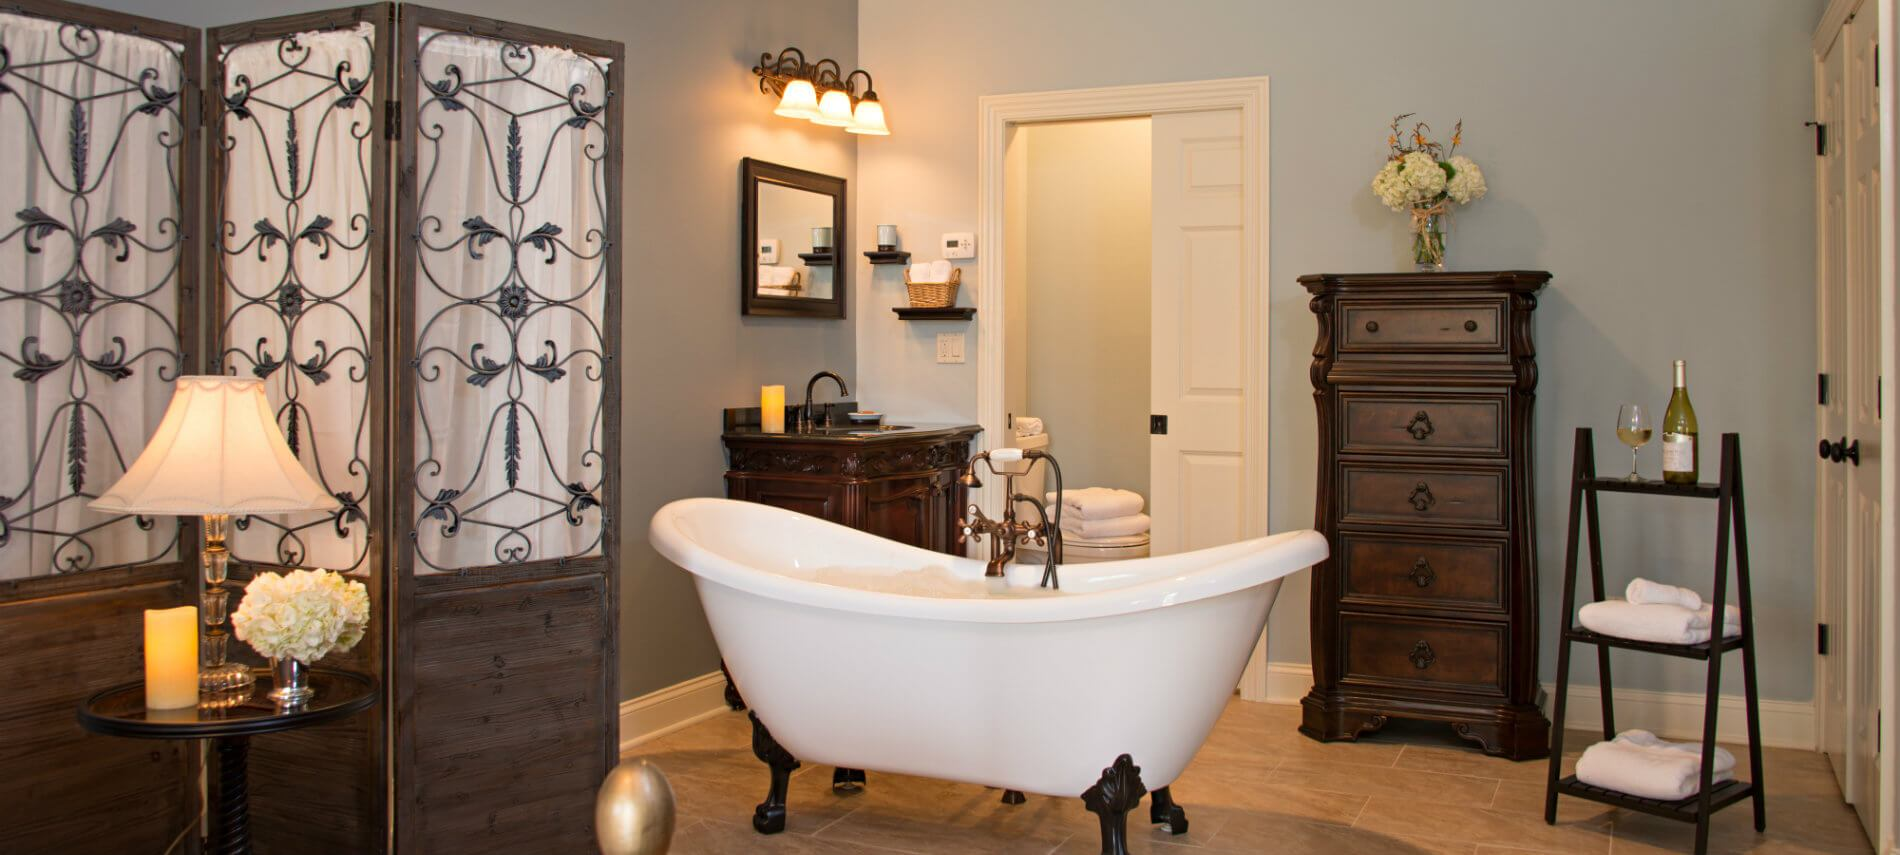 Elegant bathroom with sage blue walls features a white clawfoot bathtub in the center of room with dark wooden furniture